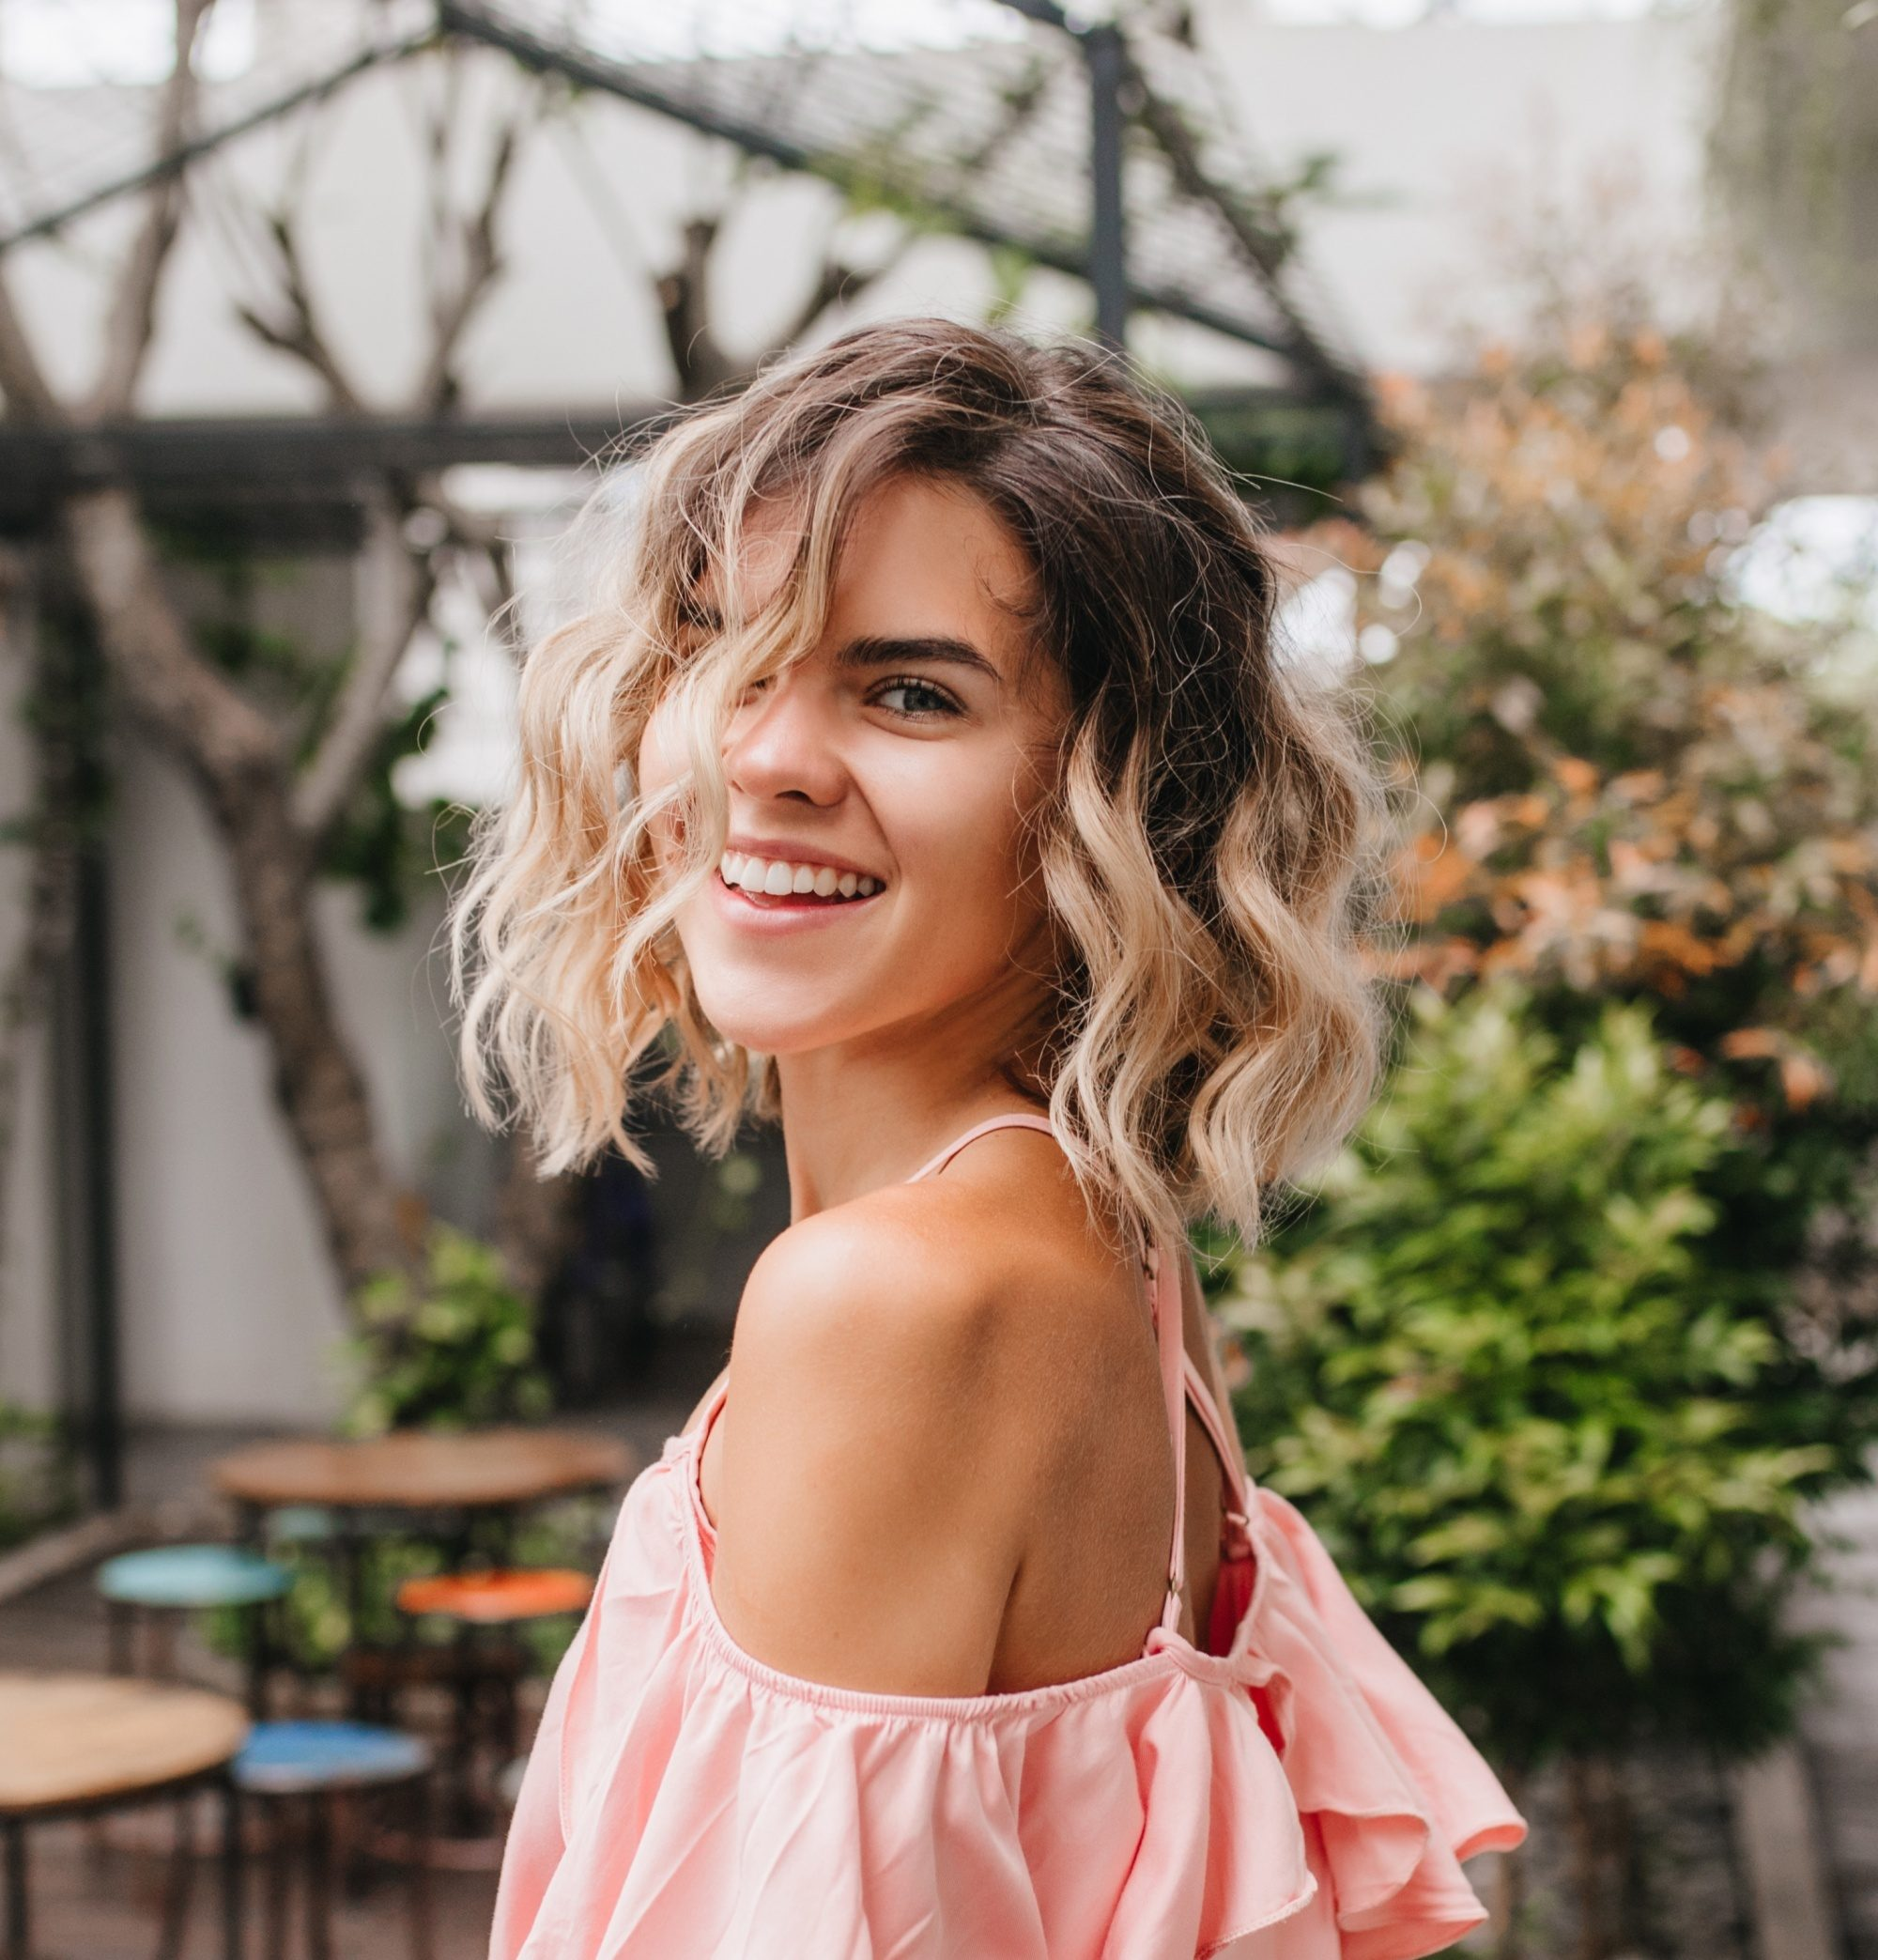 Layered curly hair: Woman with short ombre curly hair smiling